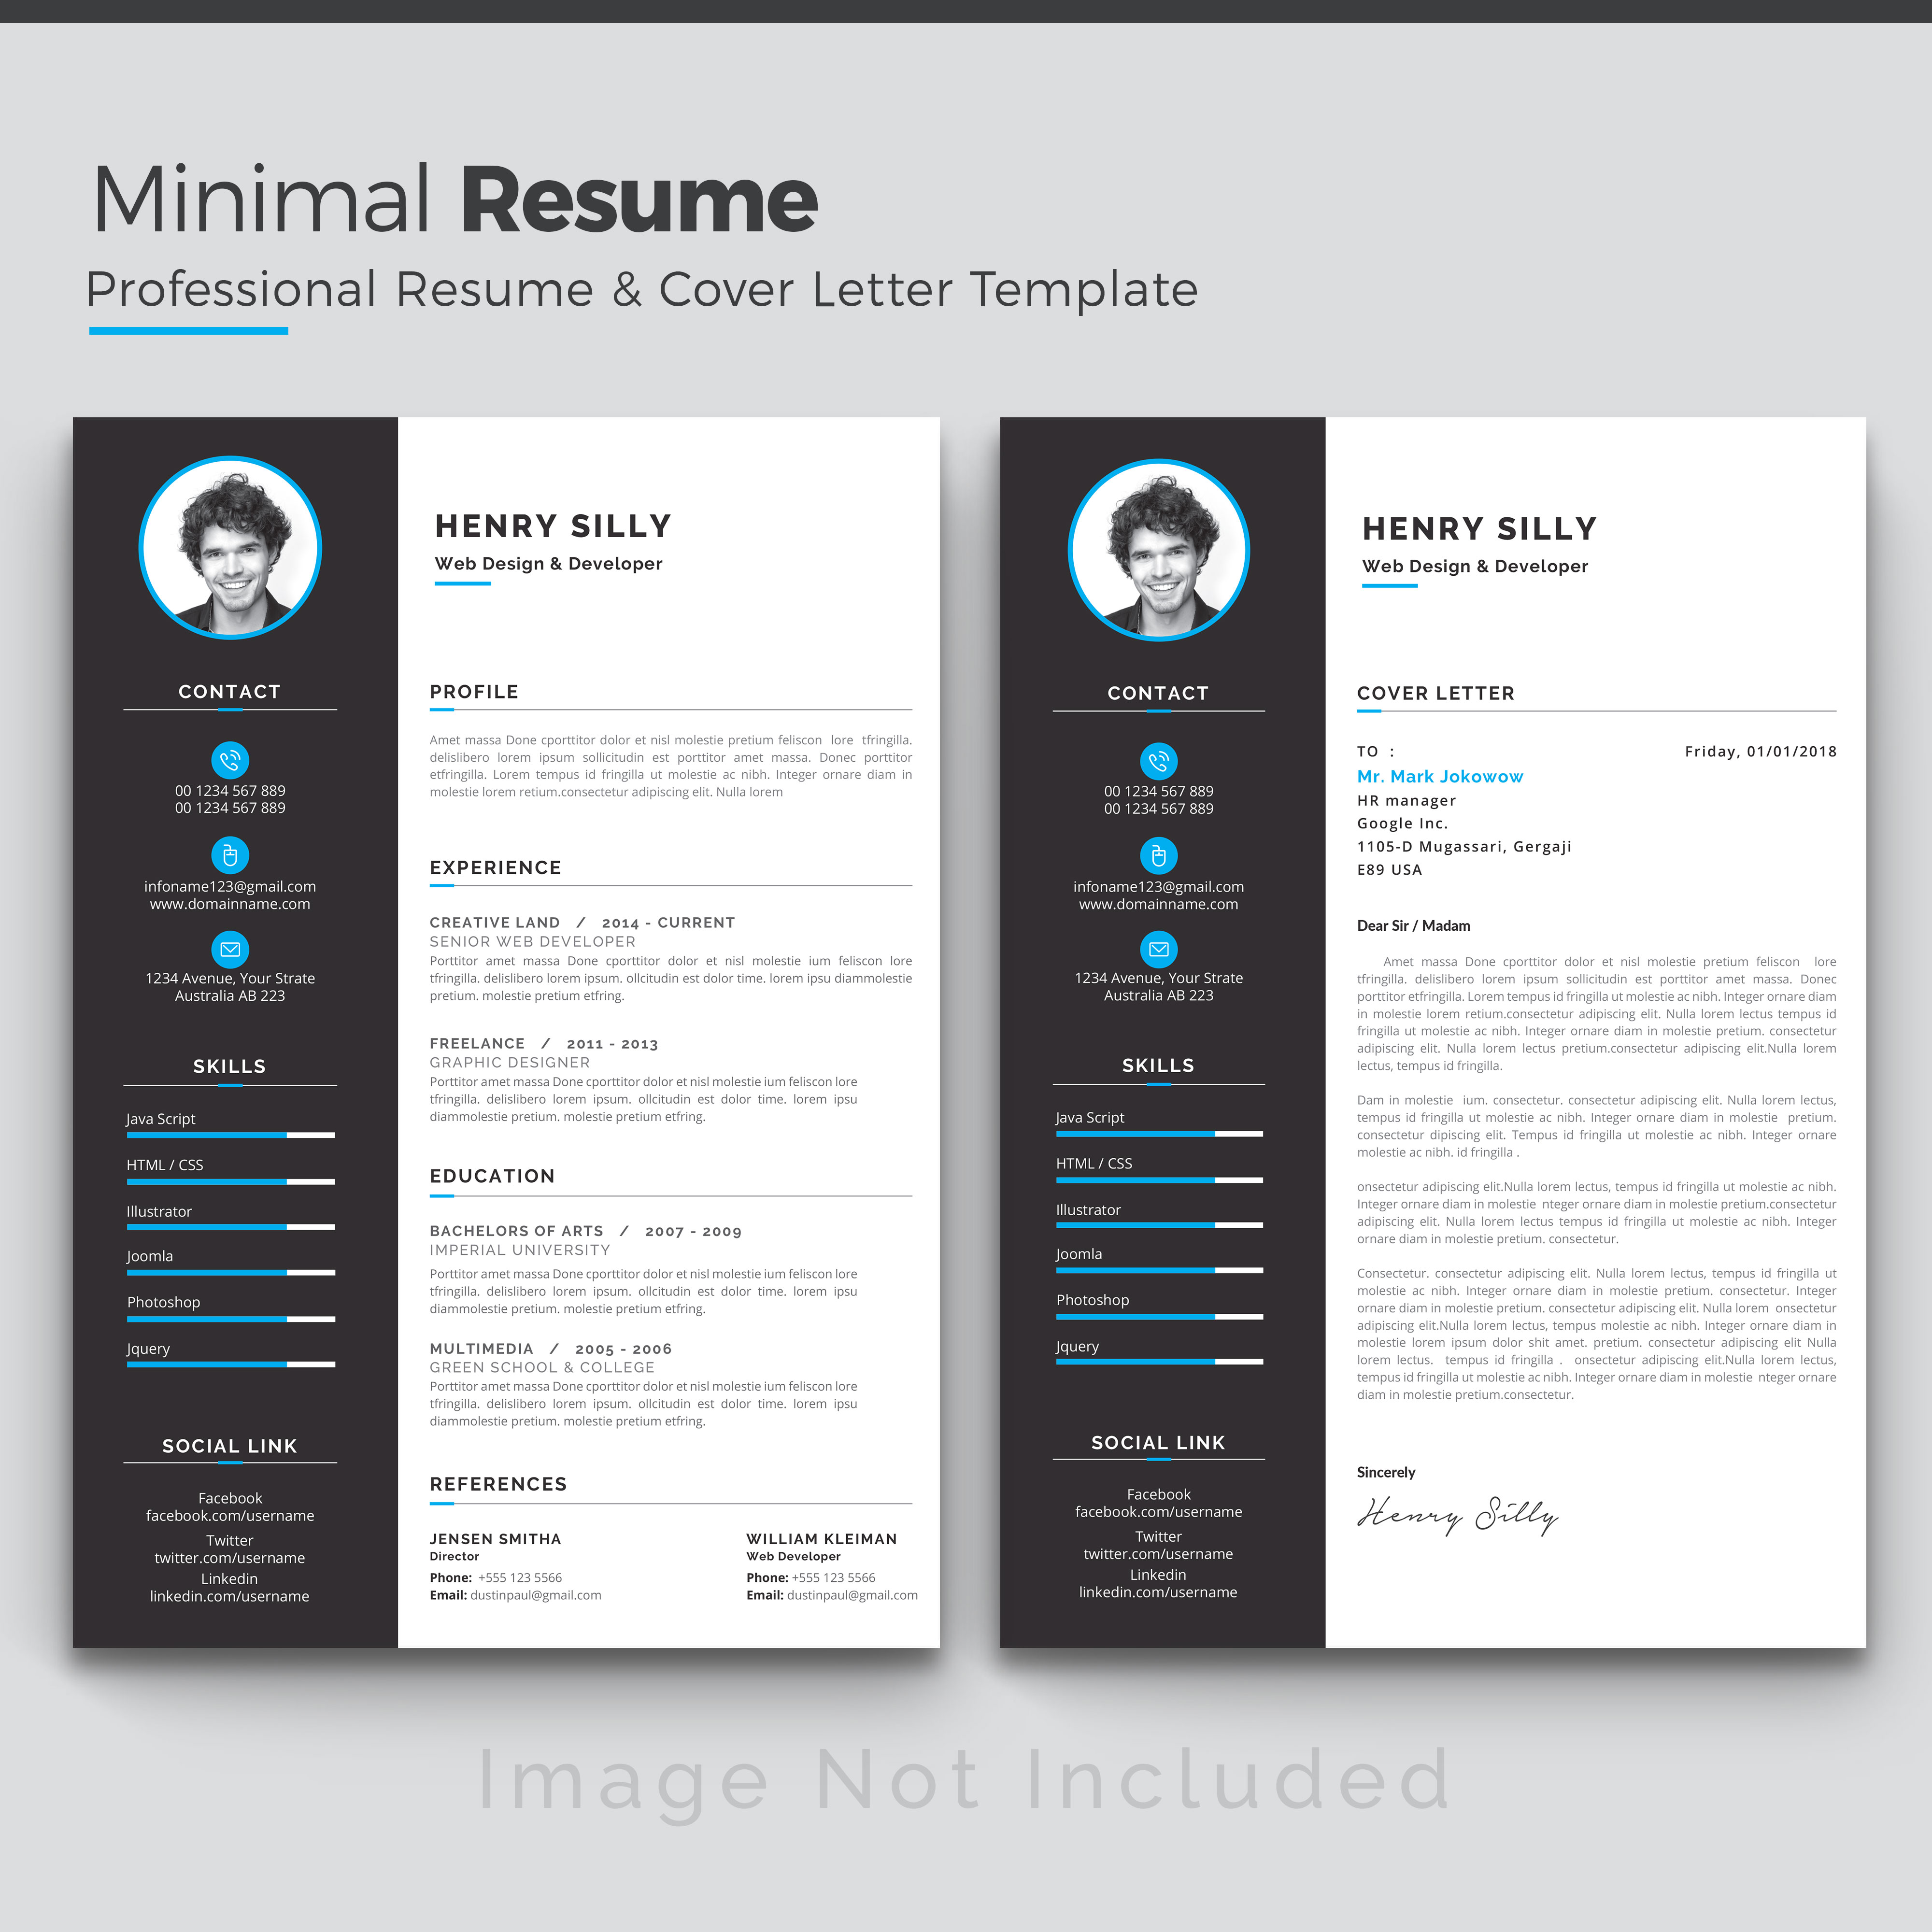 White Cv Template With Blue And Grey Details Download Free Vectors Clipart Graphics Vector Art